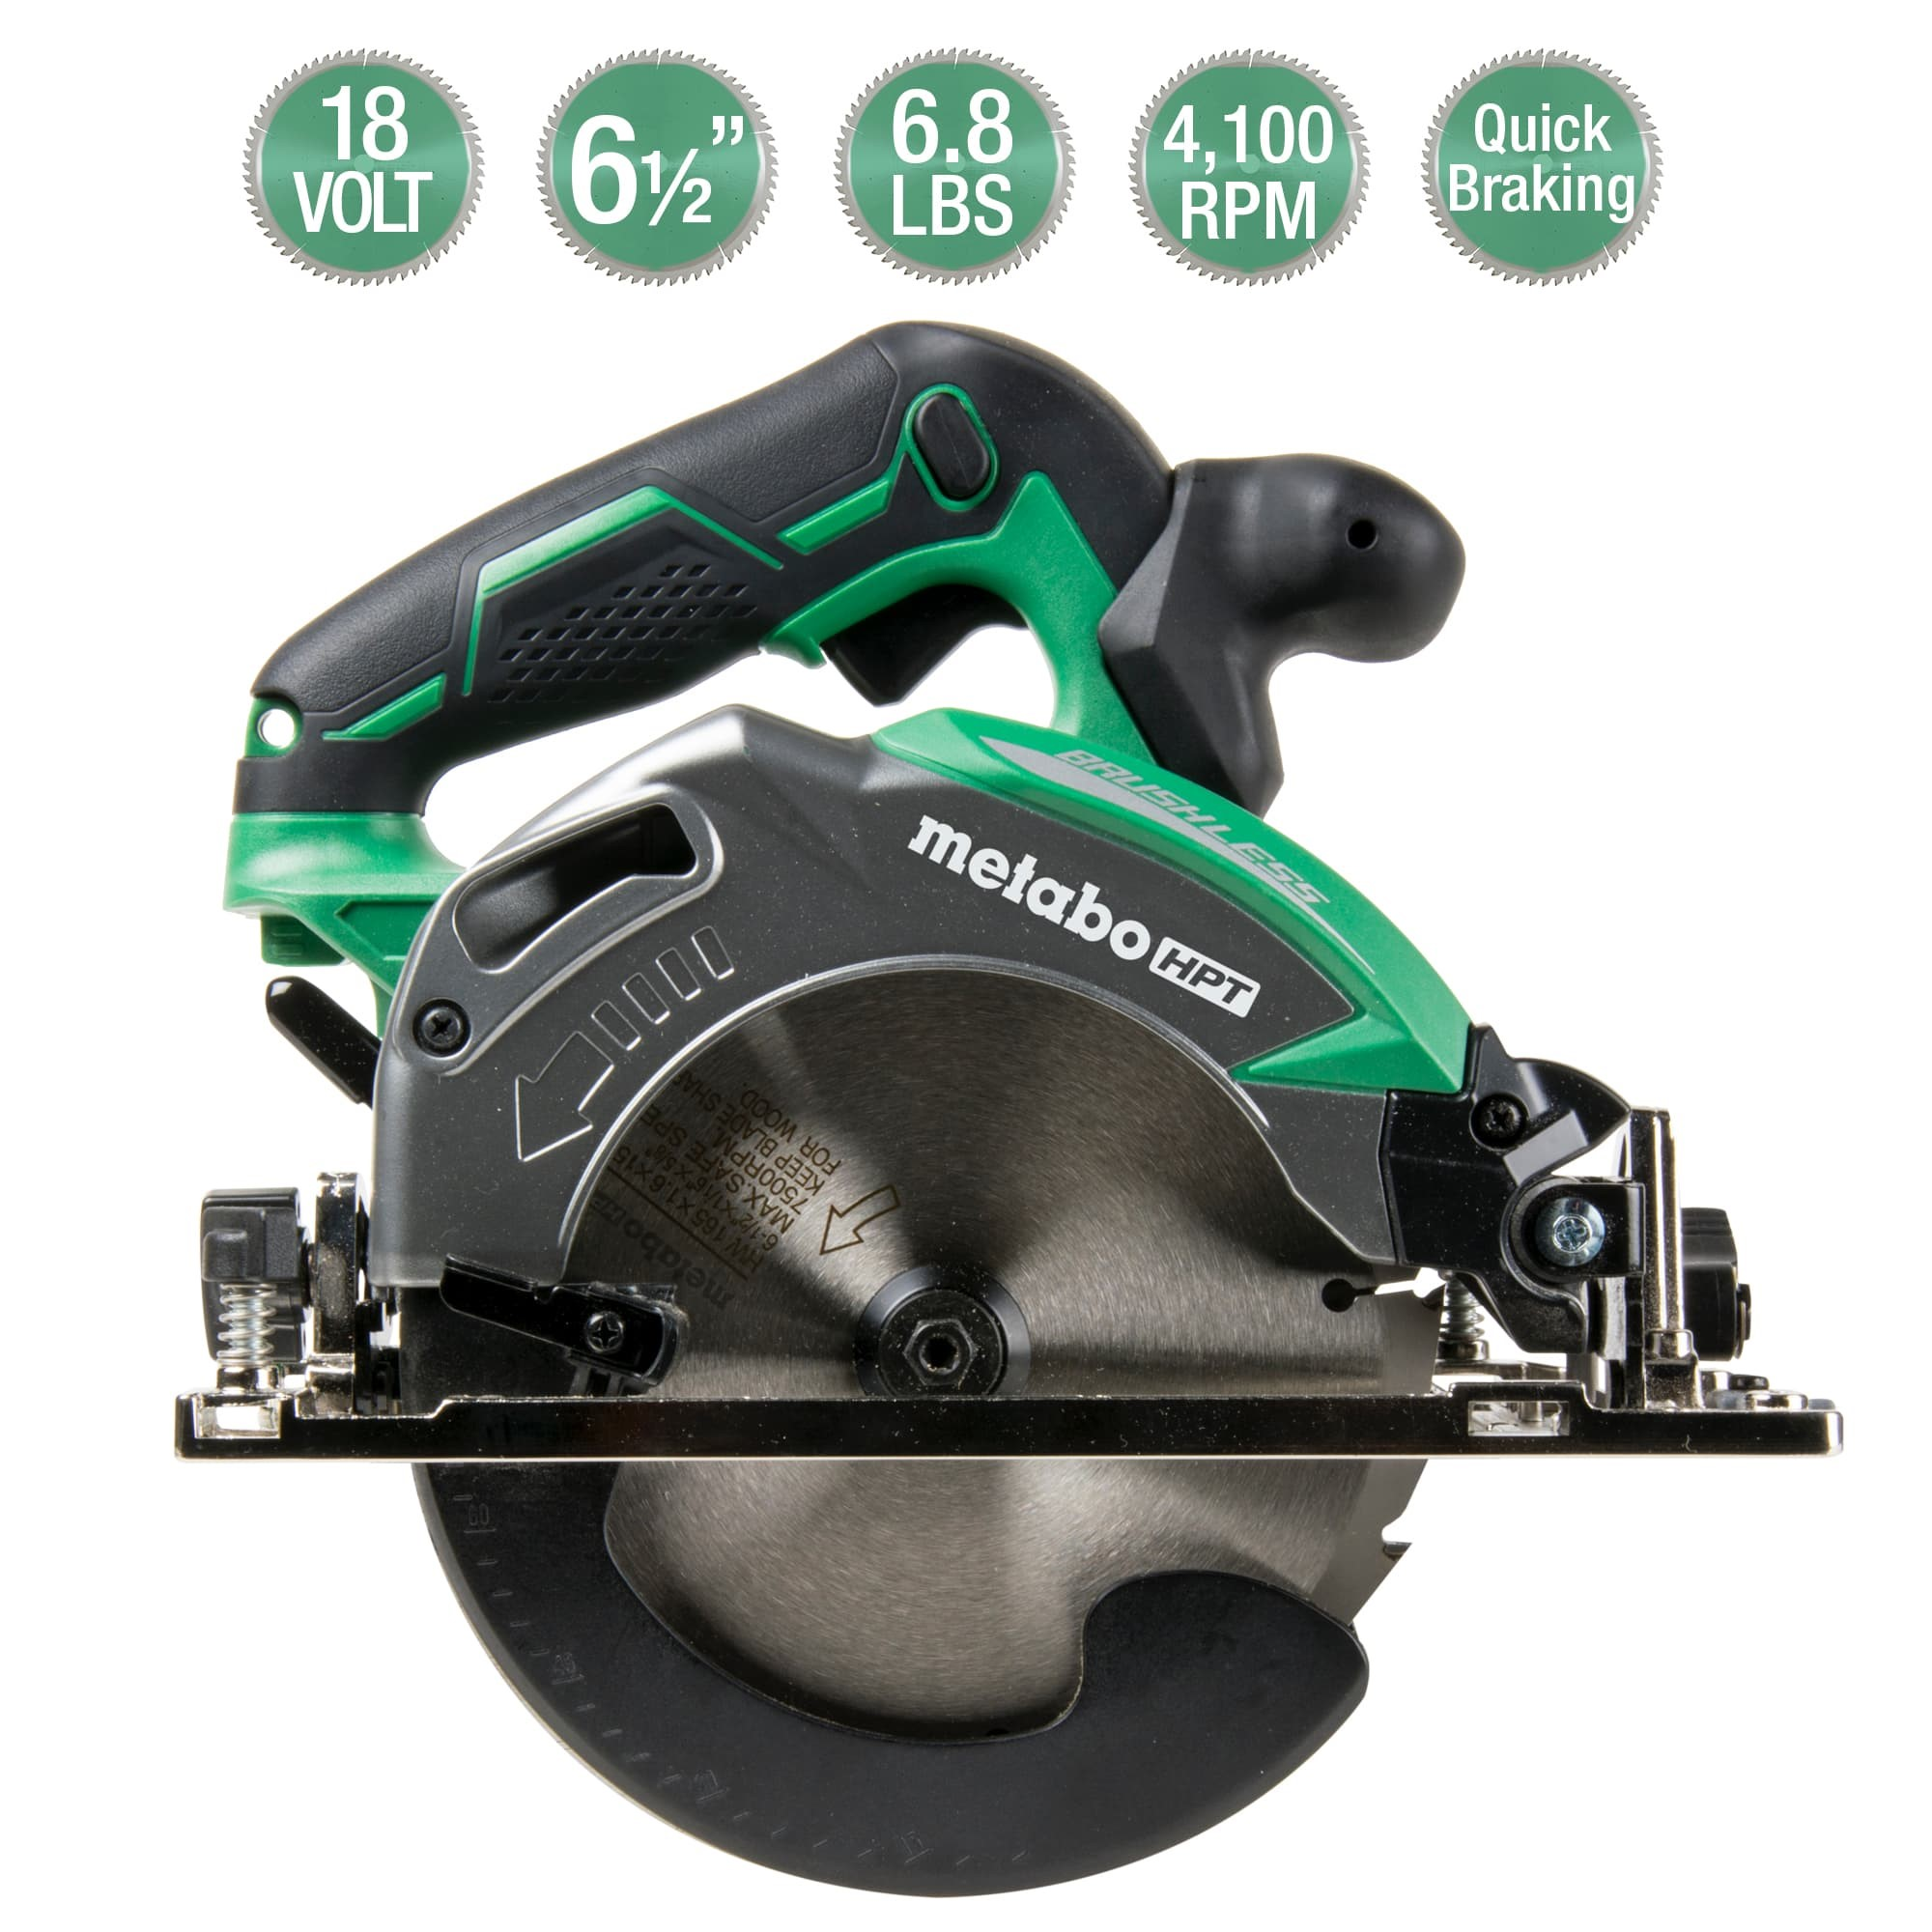 Metabo HPT Deep Cut Circular Saw with Callouts